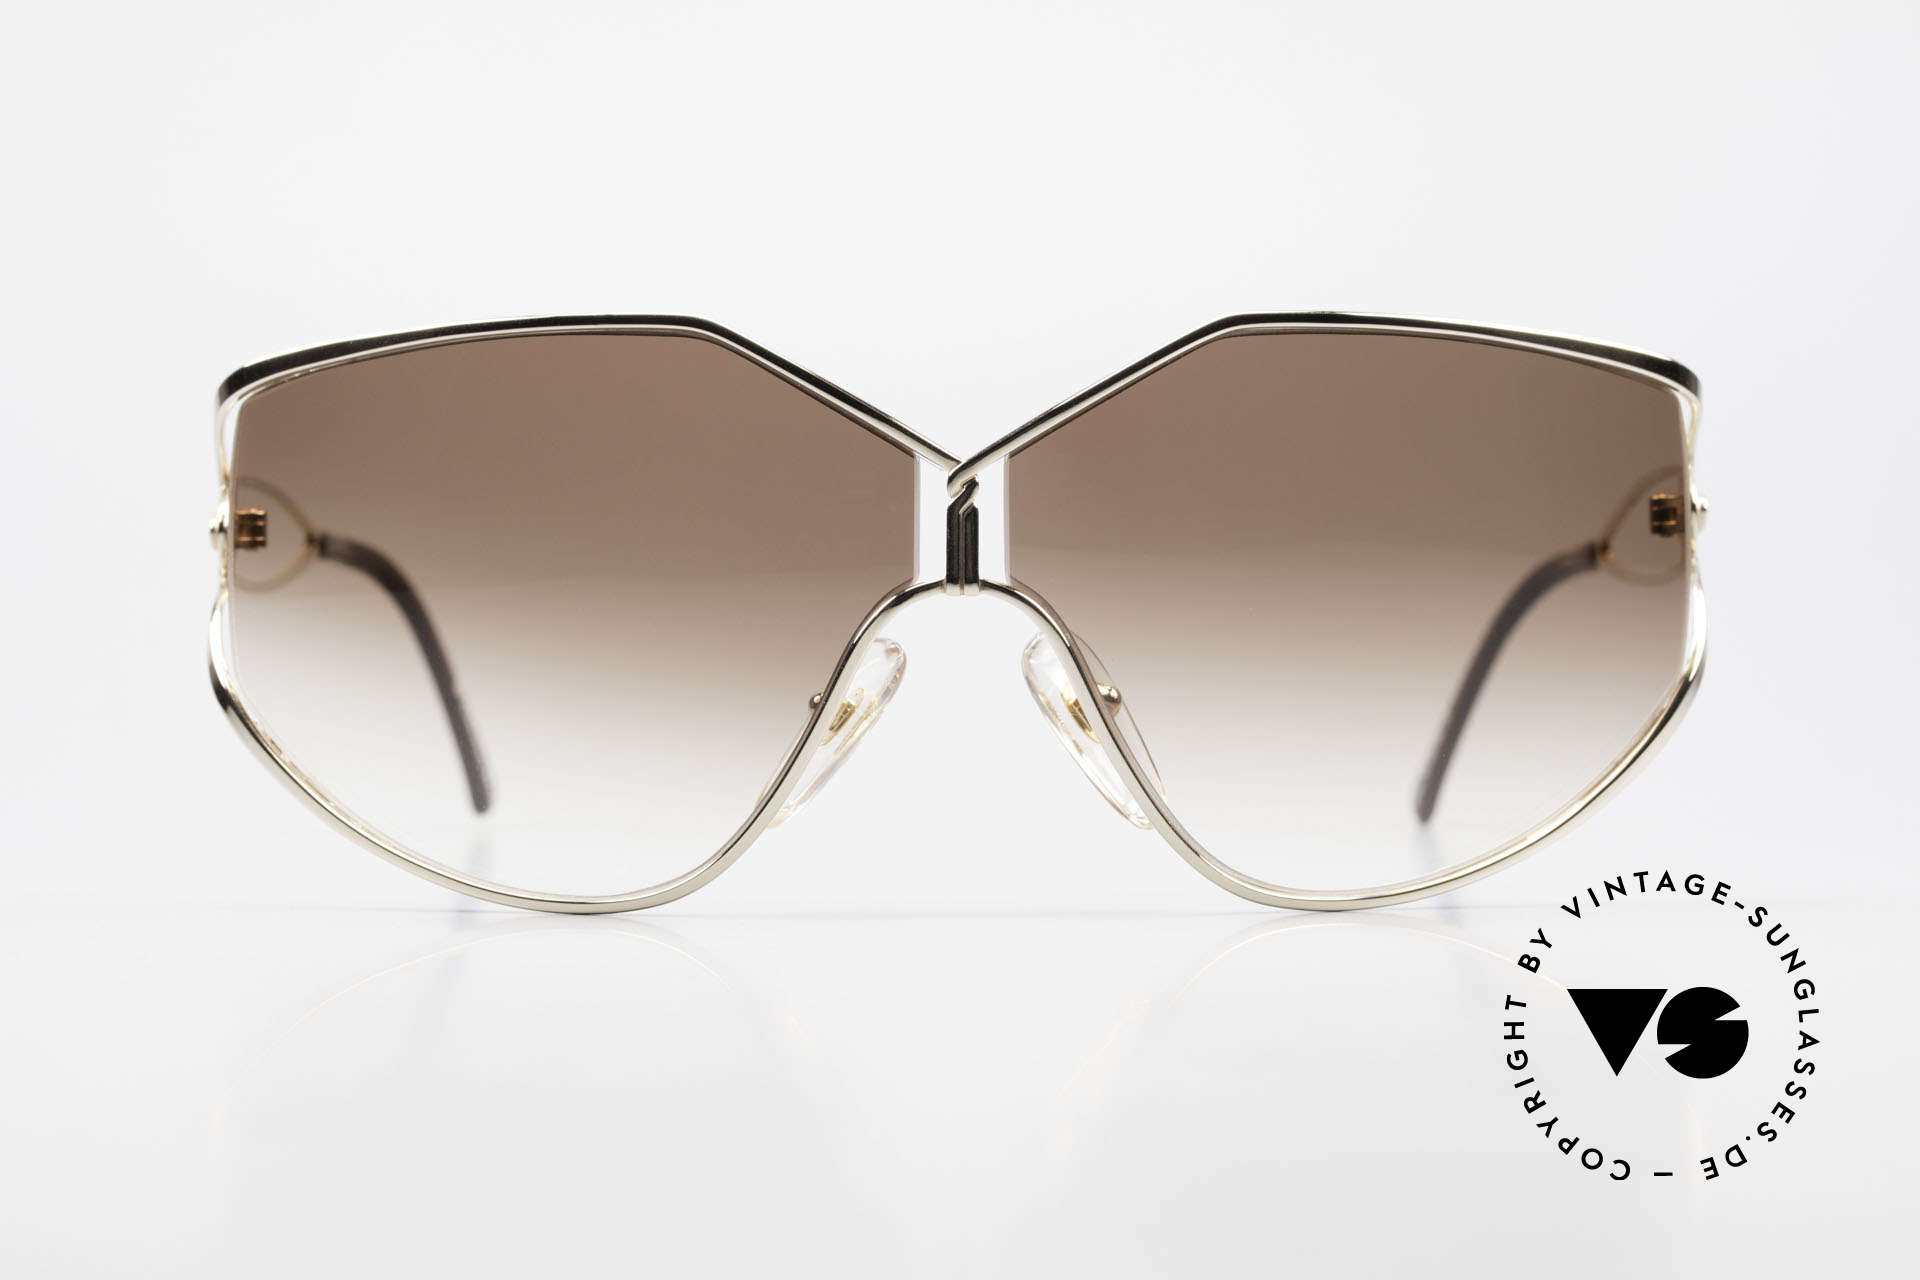 Christian Dior 2345 Ladies 90s Designer Sunglasses, classic, charming and elegant french design, Made for Women